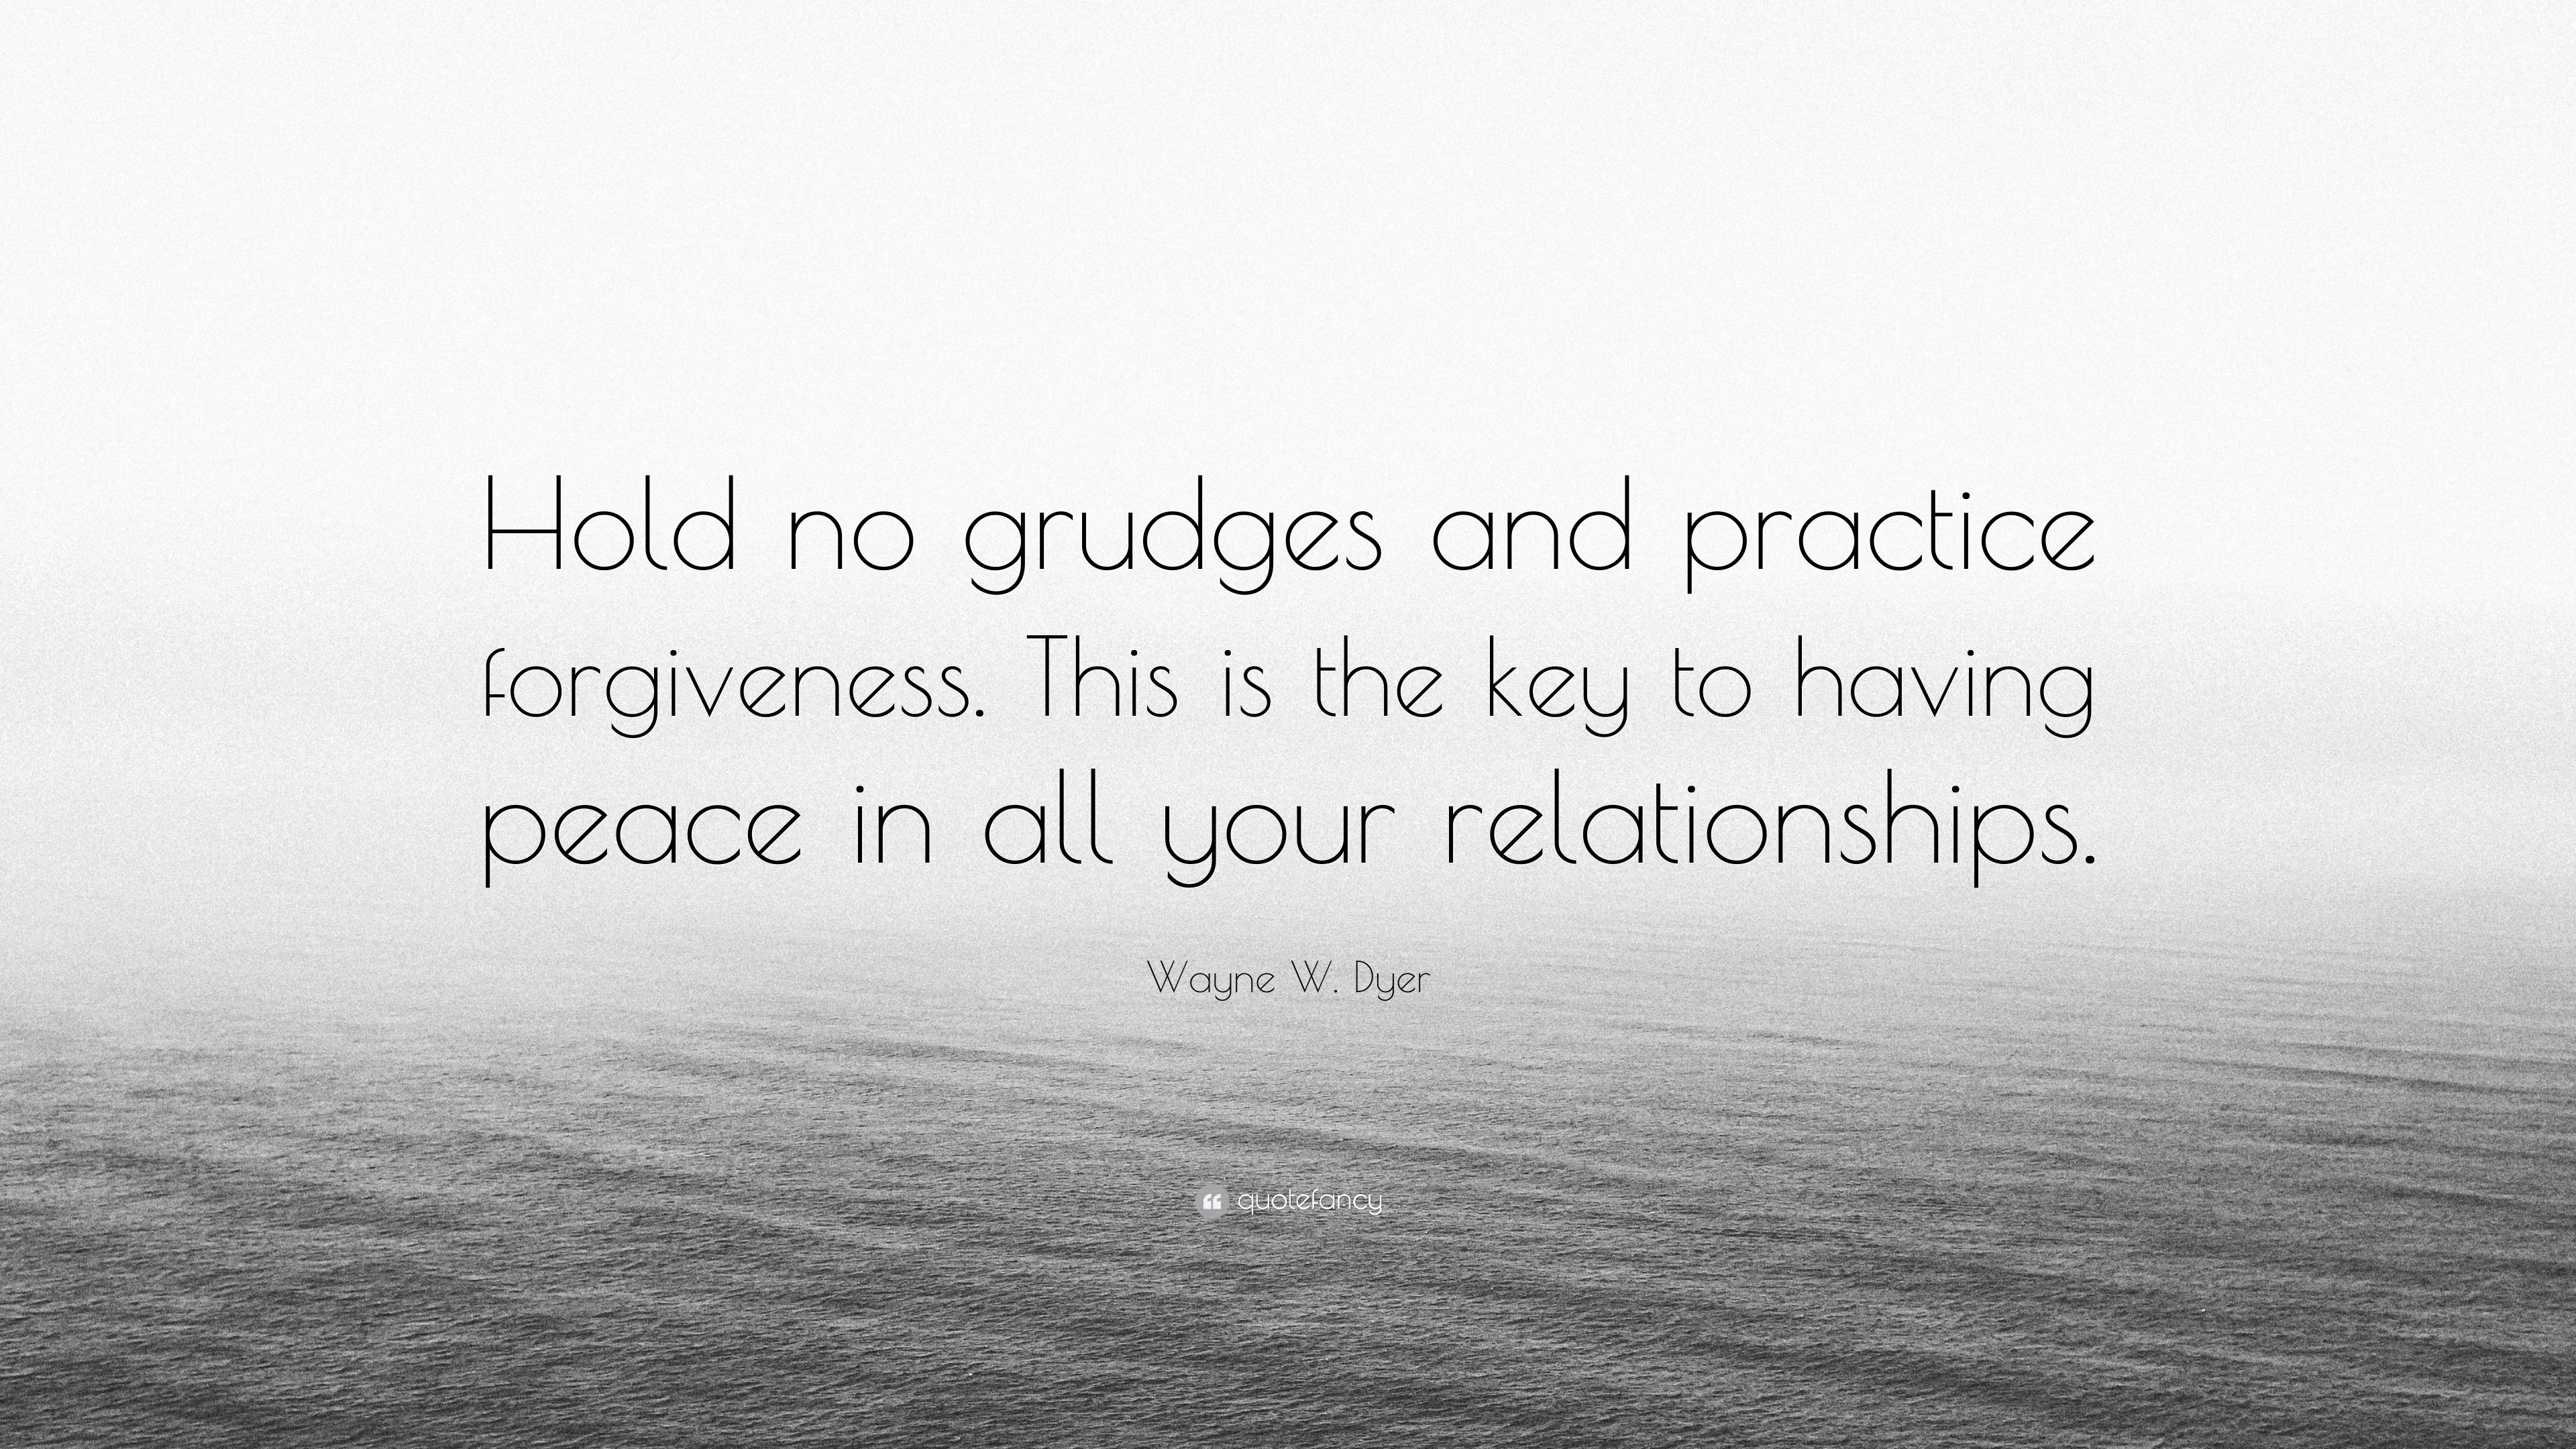 Holding grudges in relationships